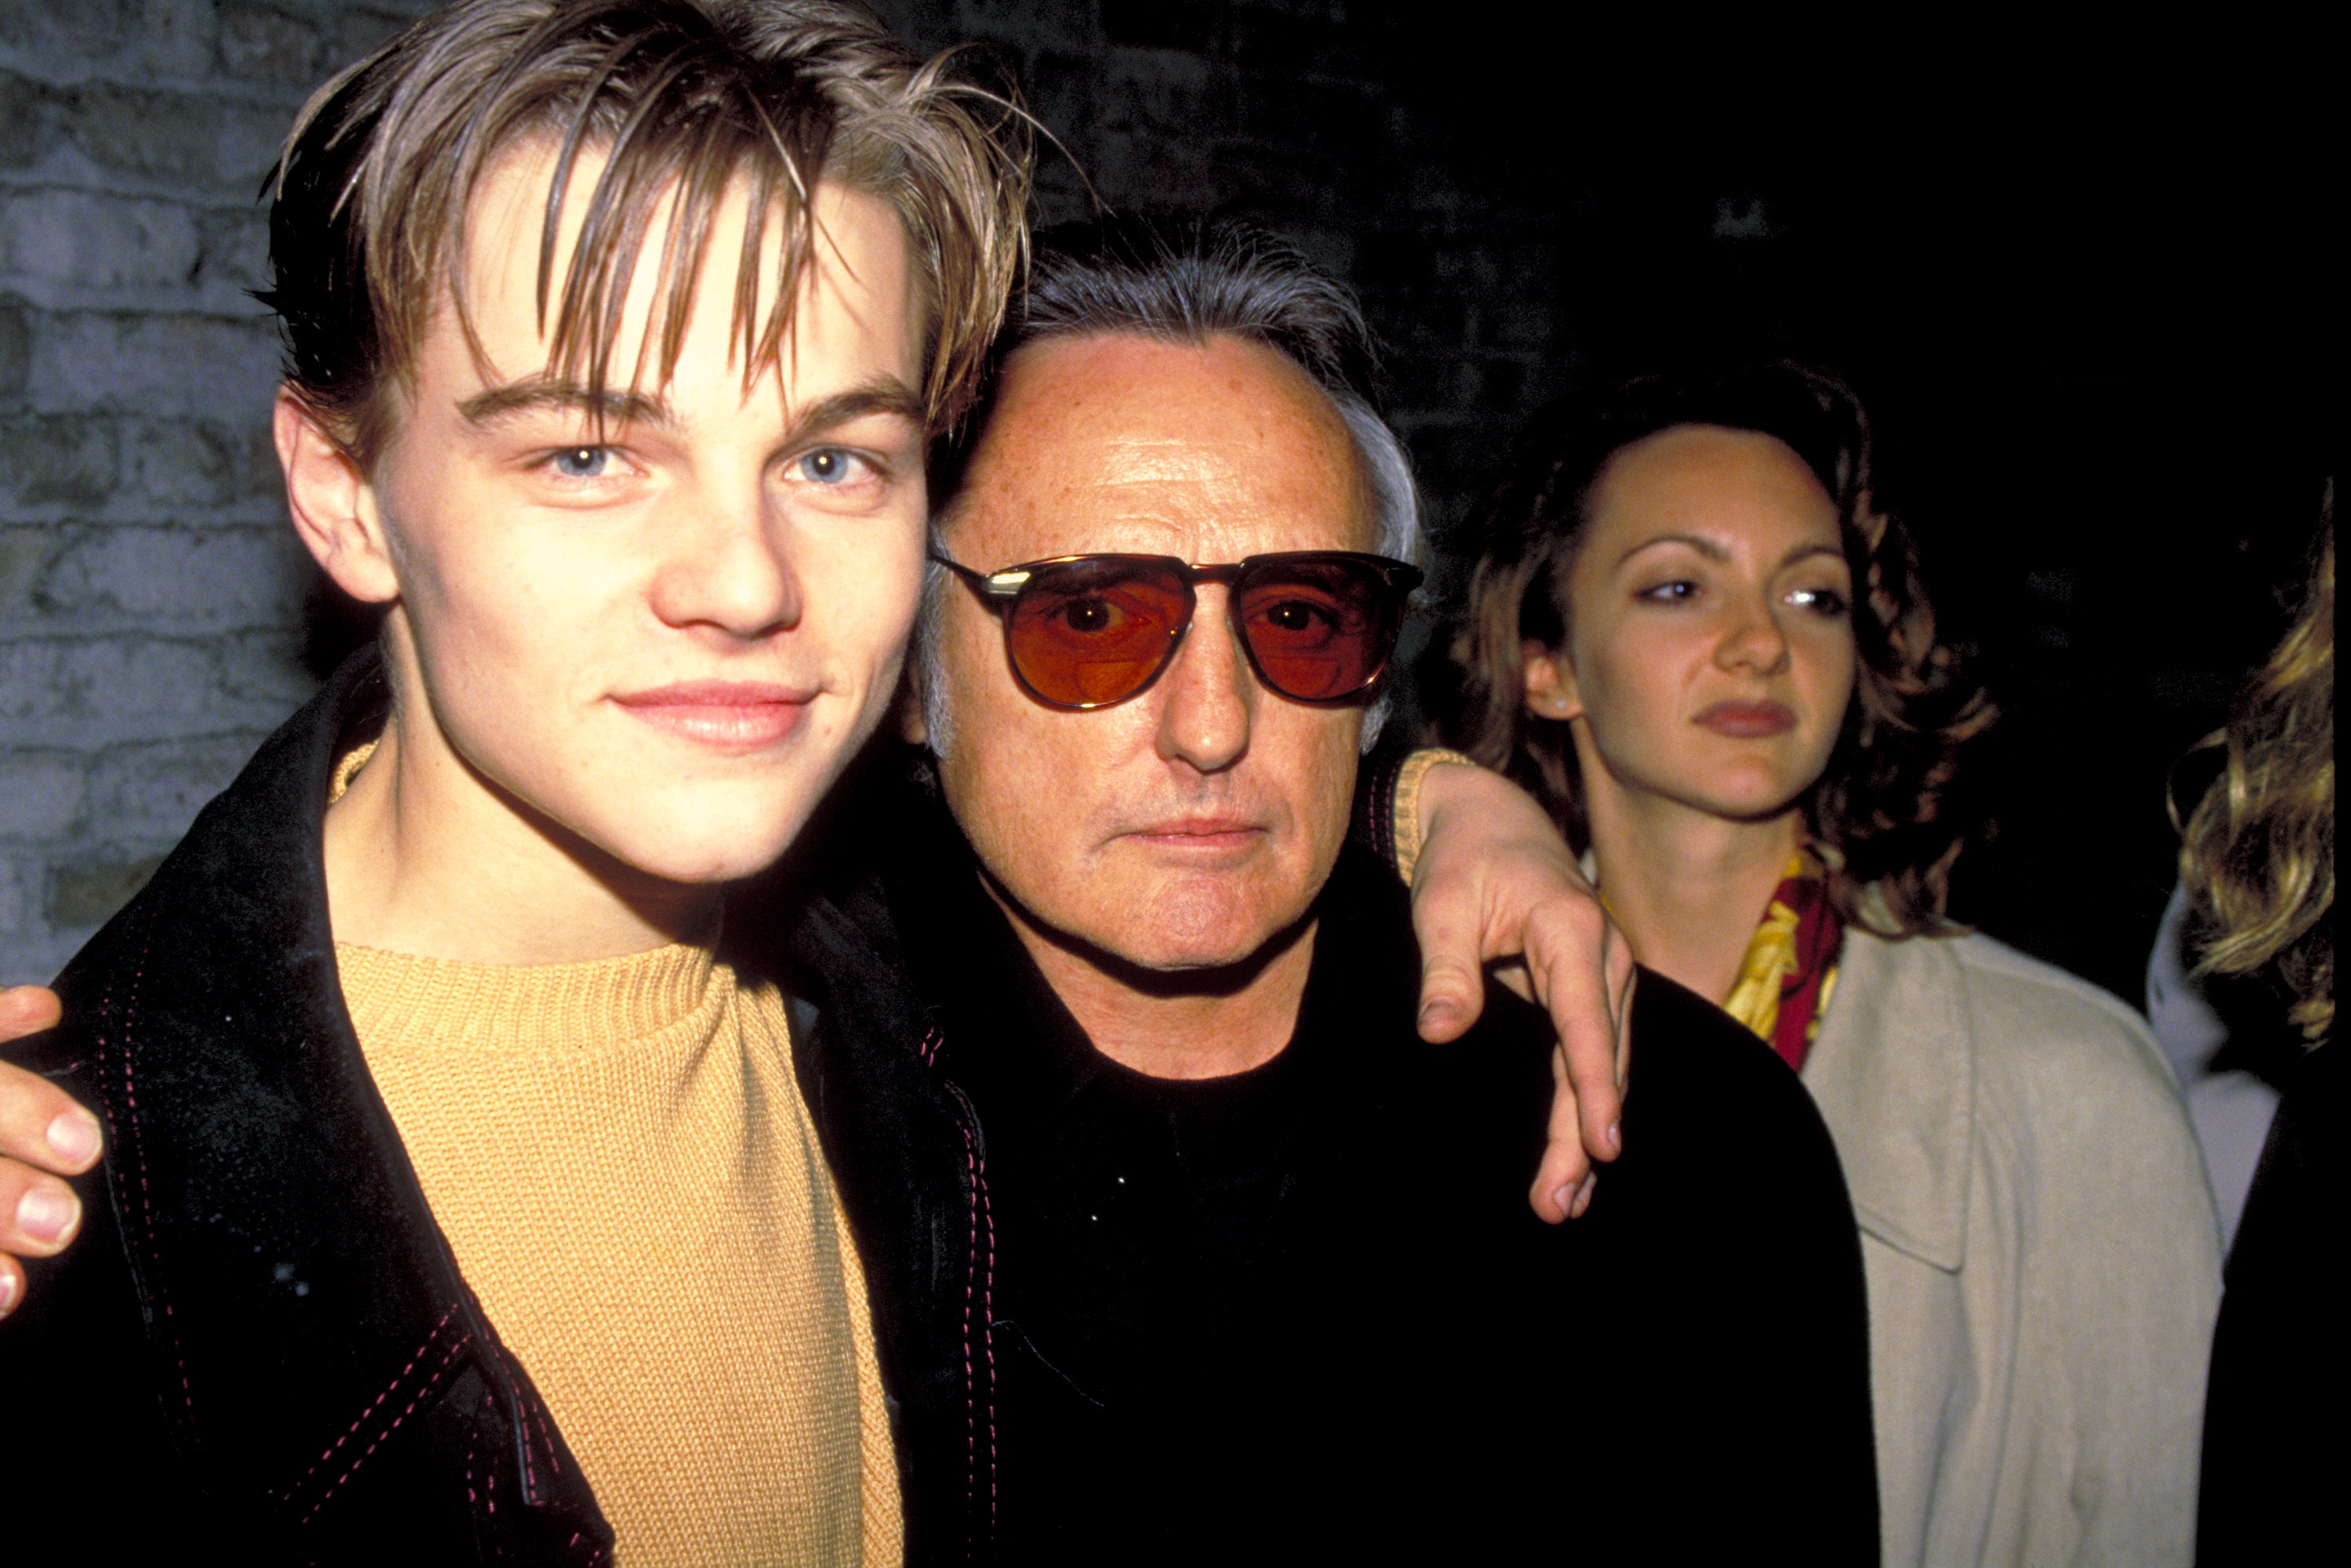 From left: Leonardo DiCaprio and Dennis Hopper in New York City on April 2, 1994.